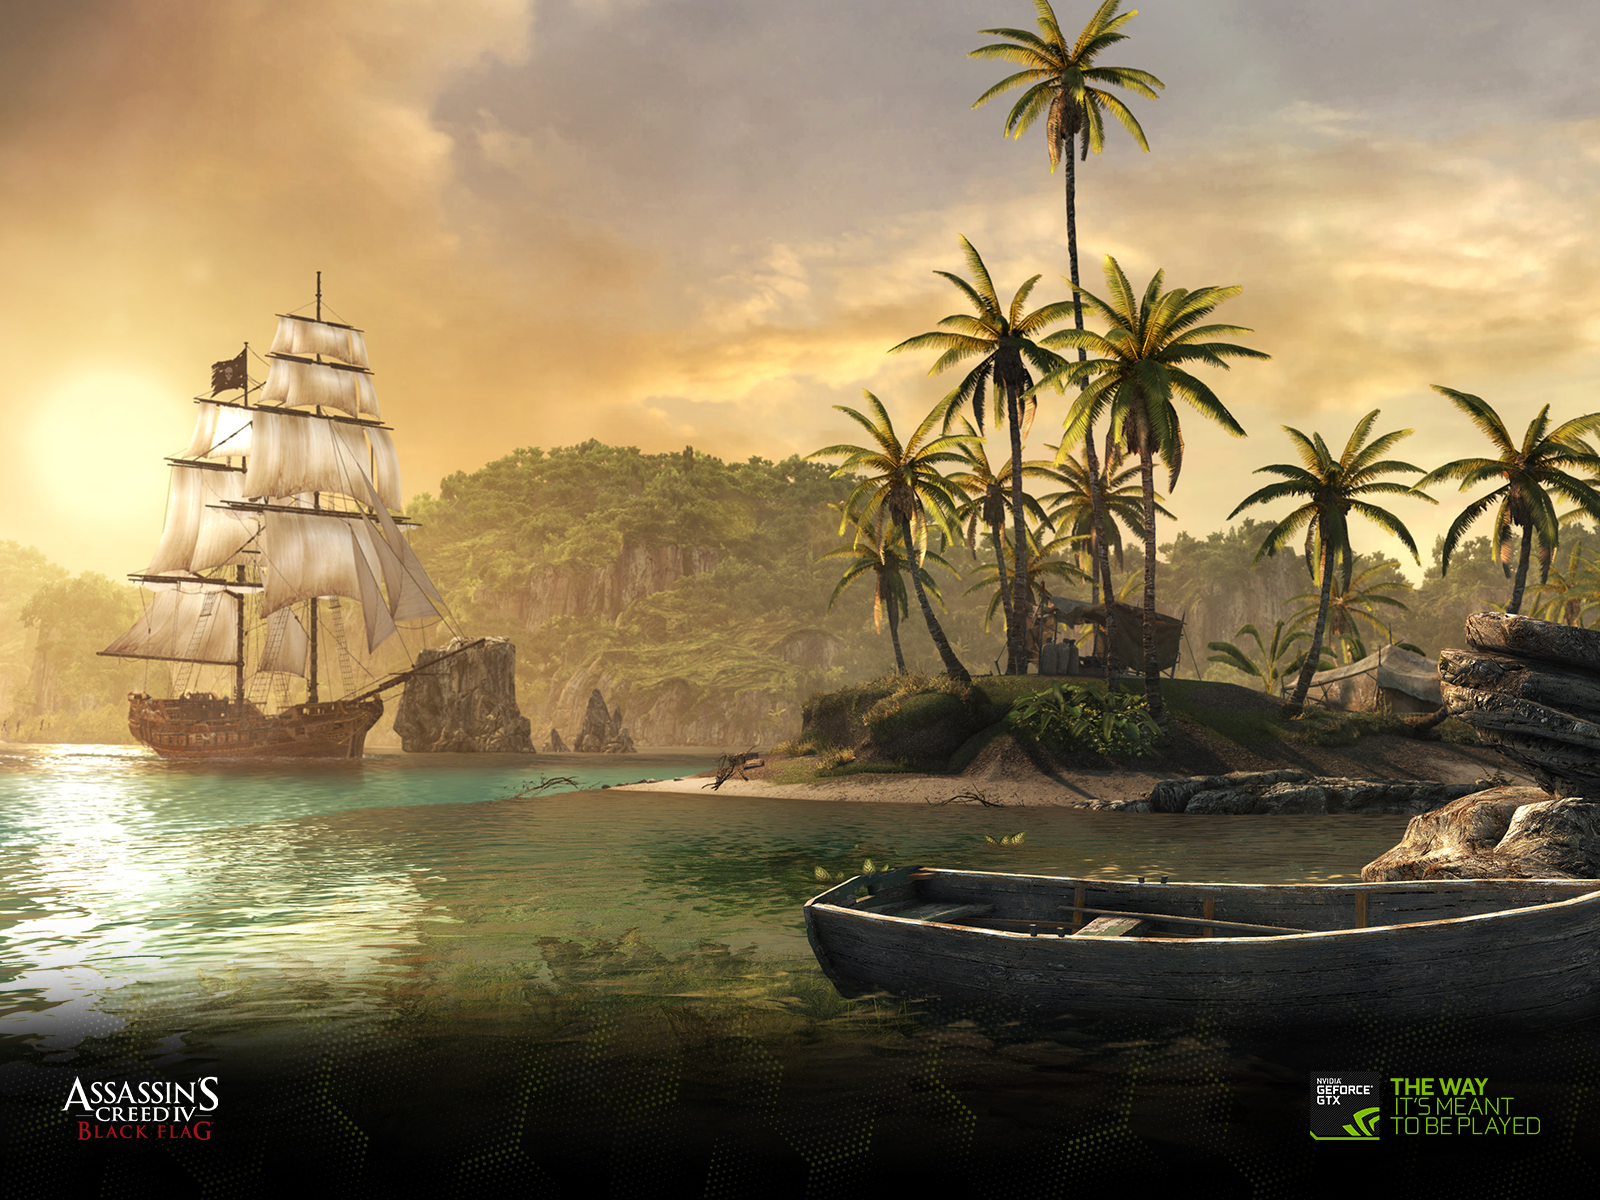 download the assassin's creed iv black flag wallpapers | geforce